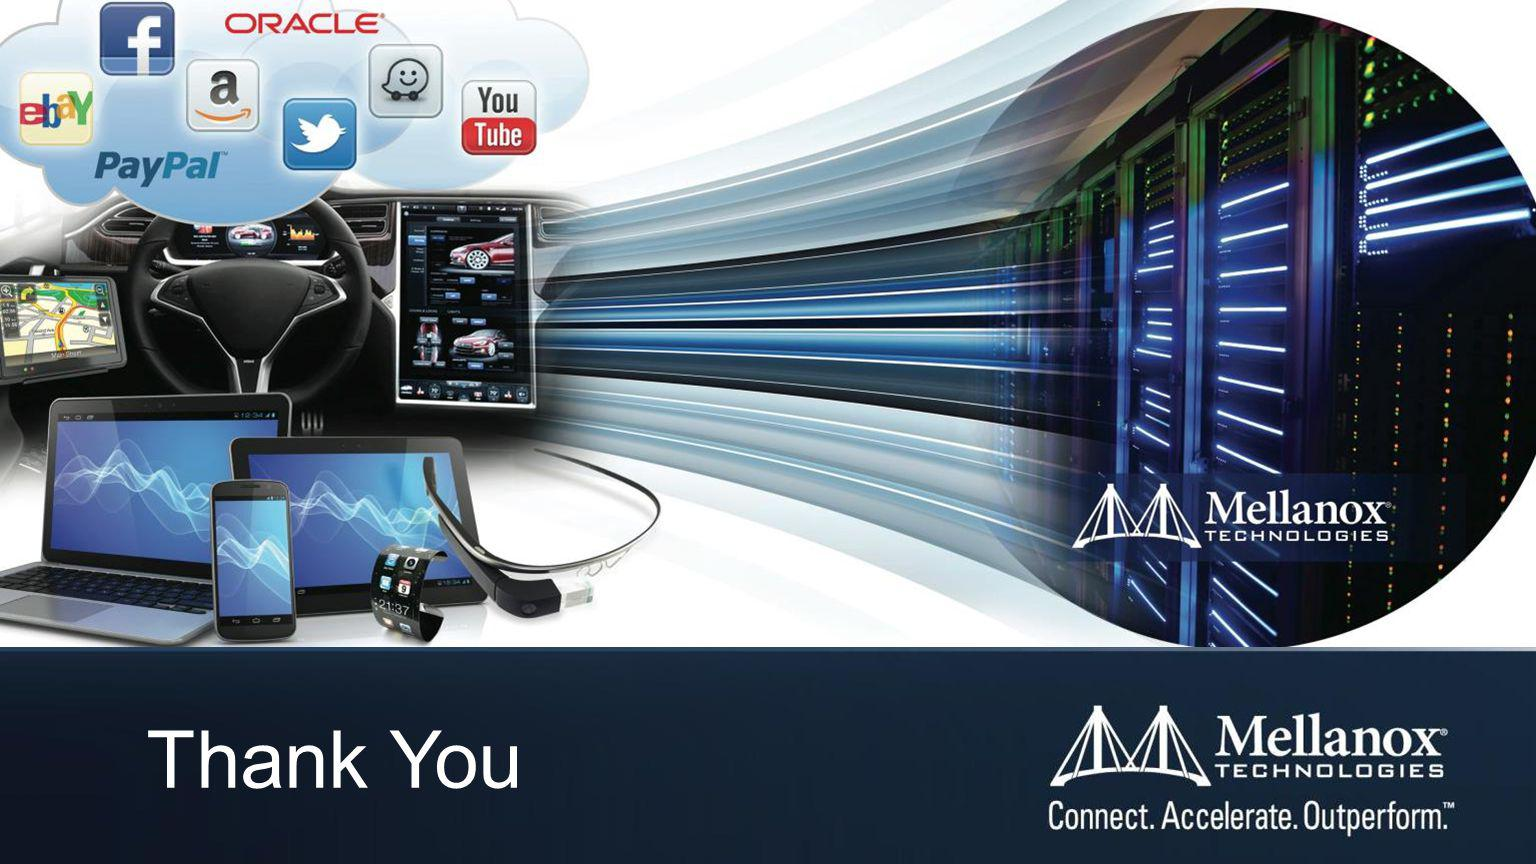 © 2014 Mellanox Technologies 16 - Mellanox Technologies- Thank You